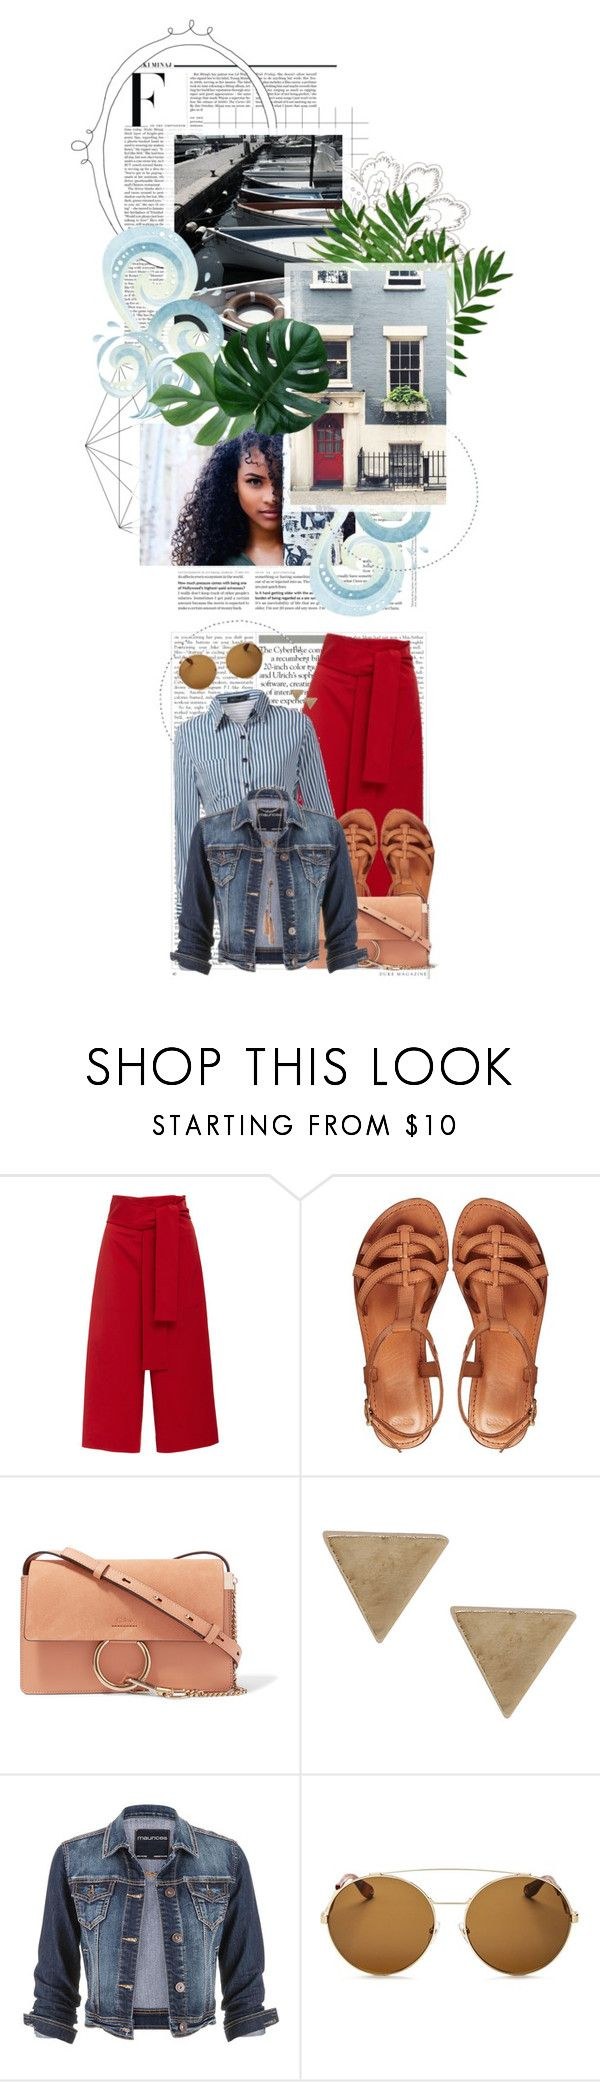 """""""NEW! Contest: Color Gallery!"""" by crystal85 ❤ liked on Polyvore featuring Nicki Minaj, TIBI, ASOS, Chloé, maurices, Givenchy and GUESS"""